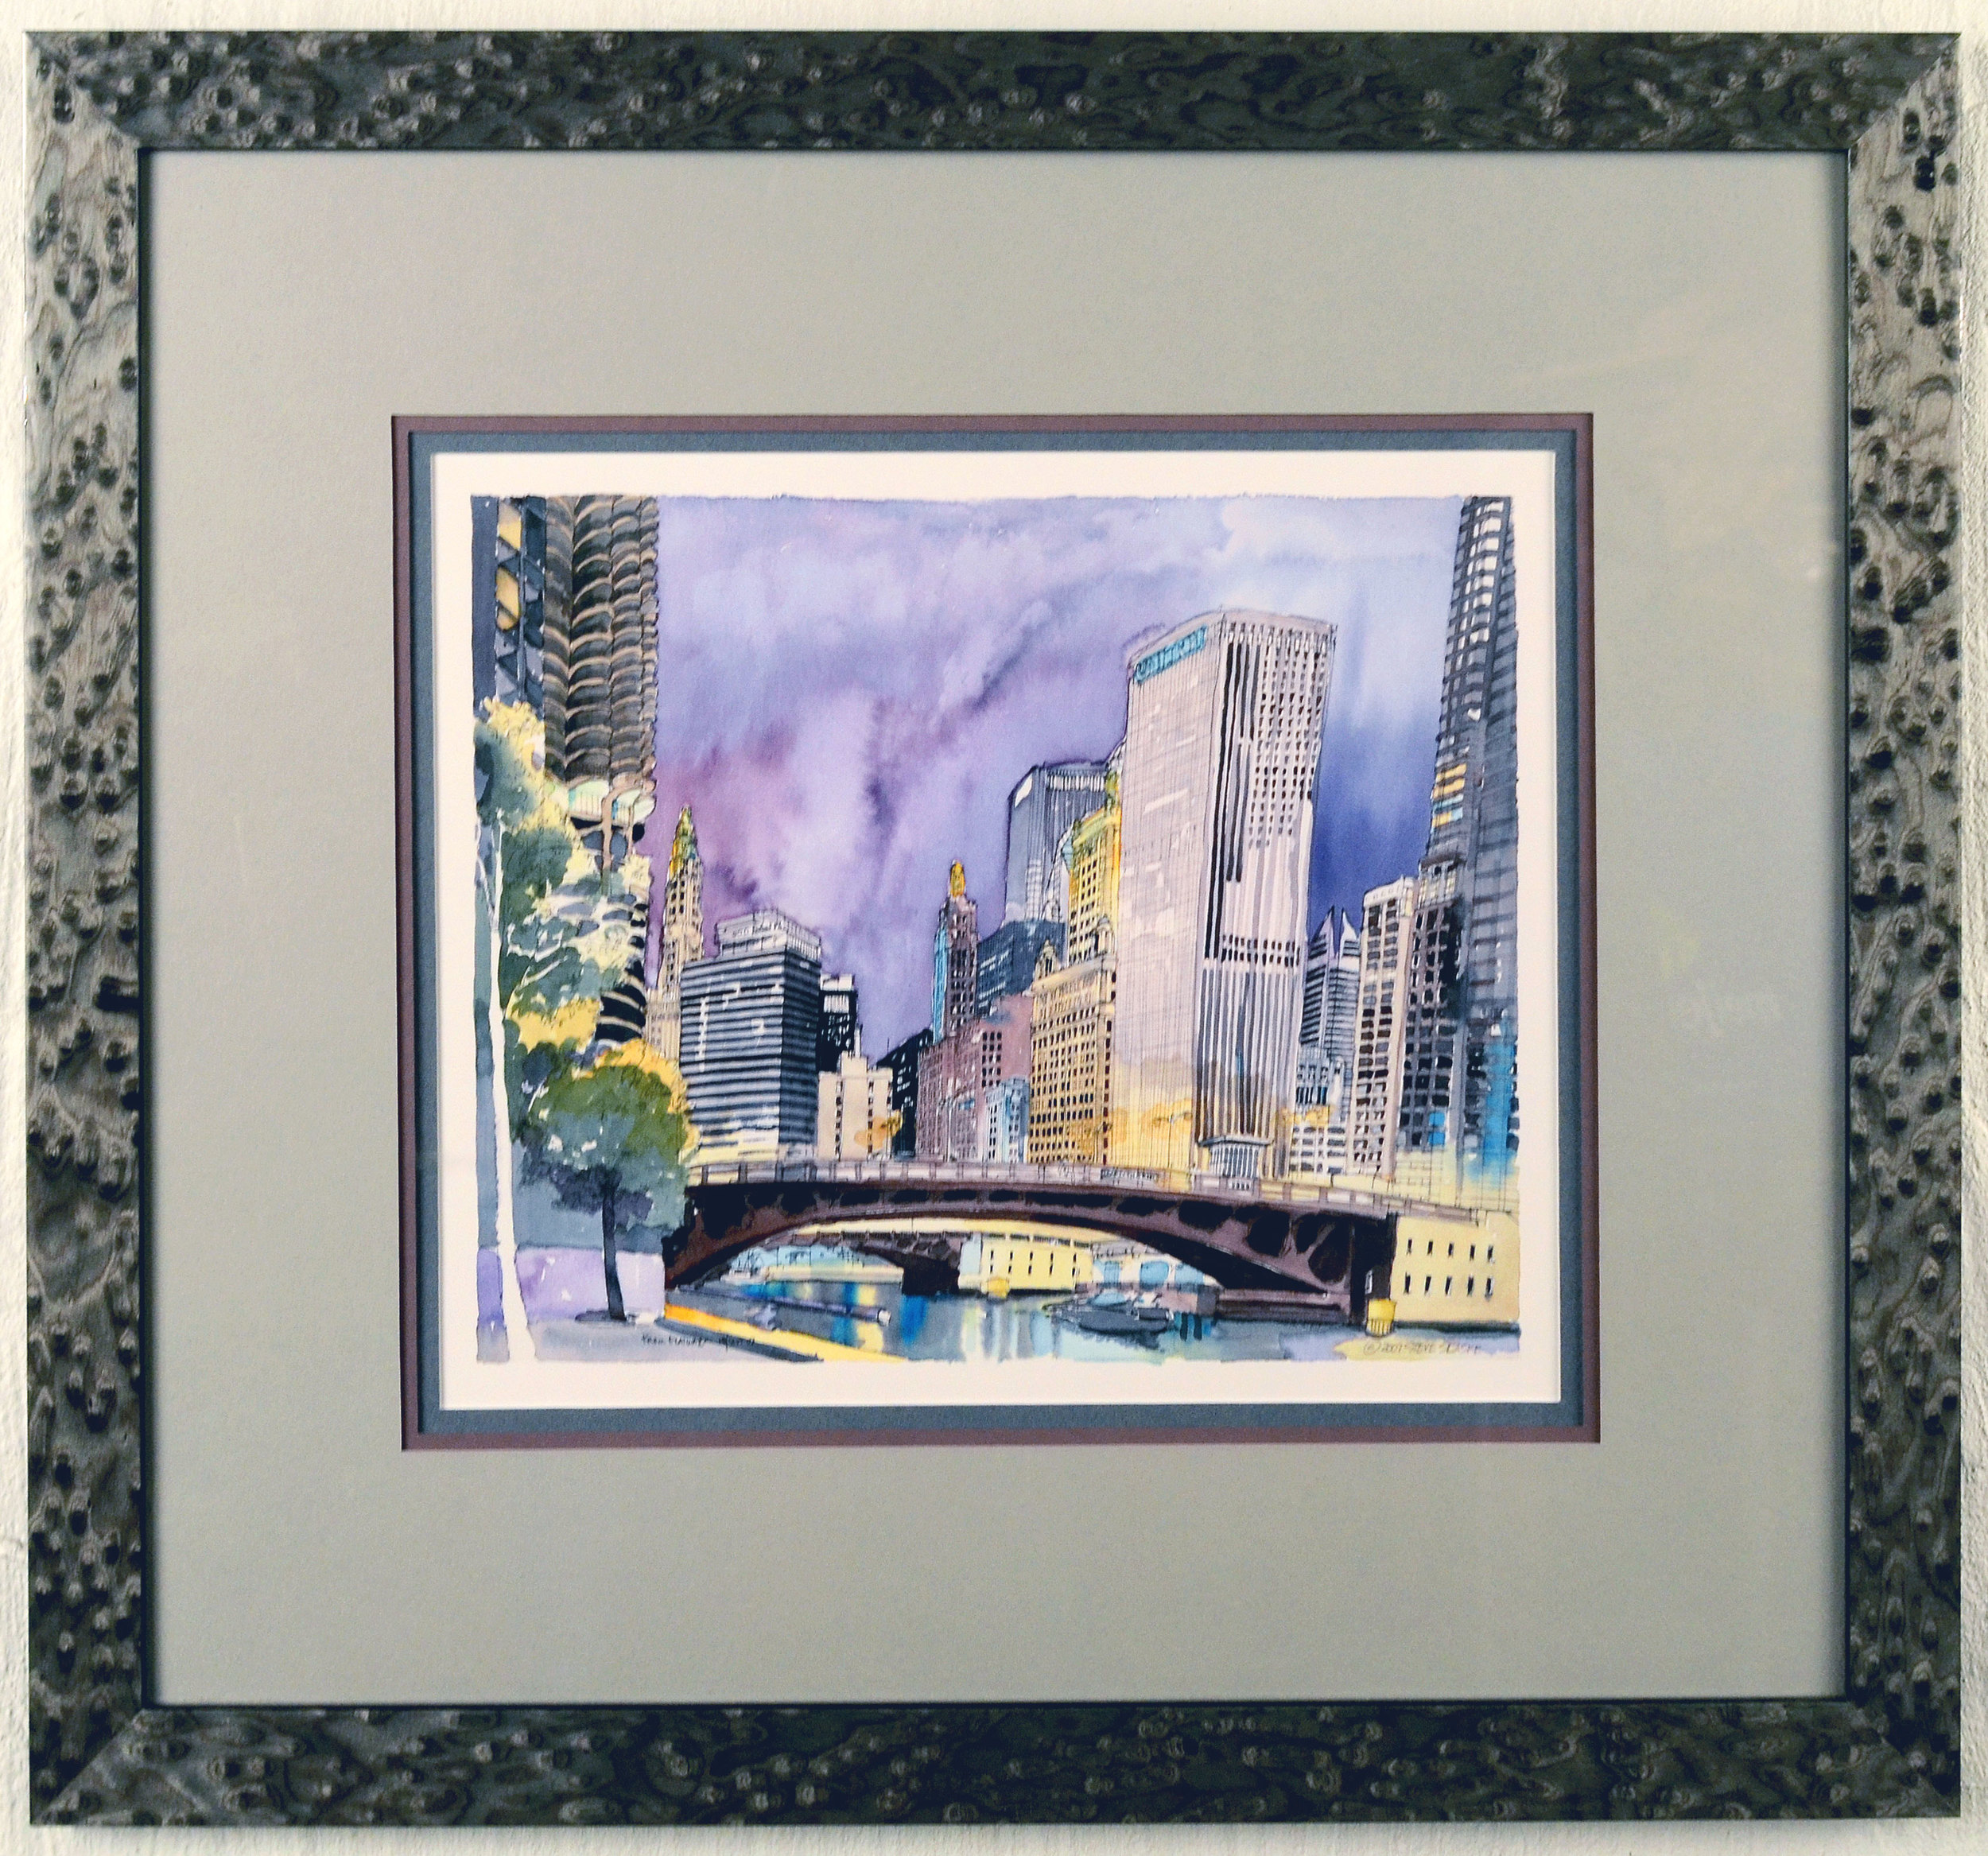 Slaske---Chicago-River-II-watercolor-6270.jpg